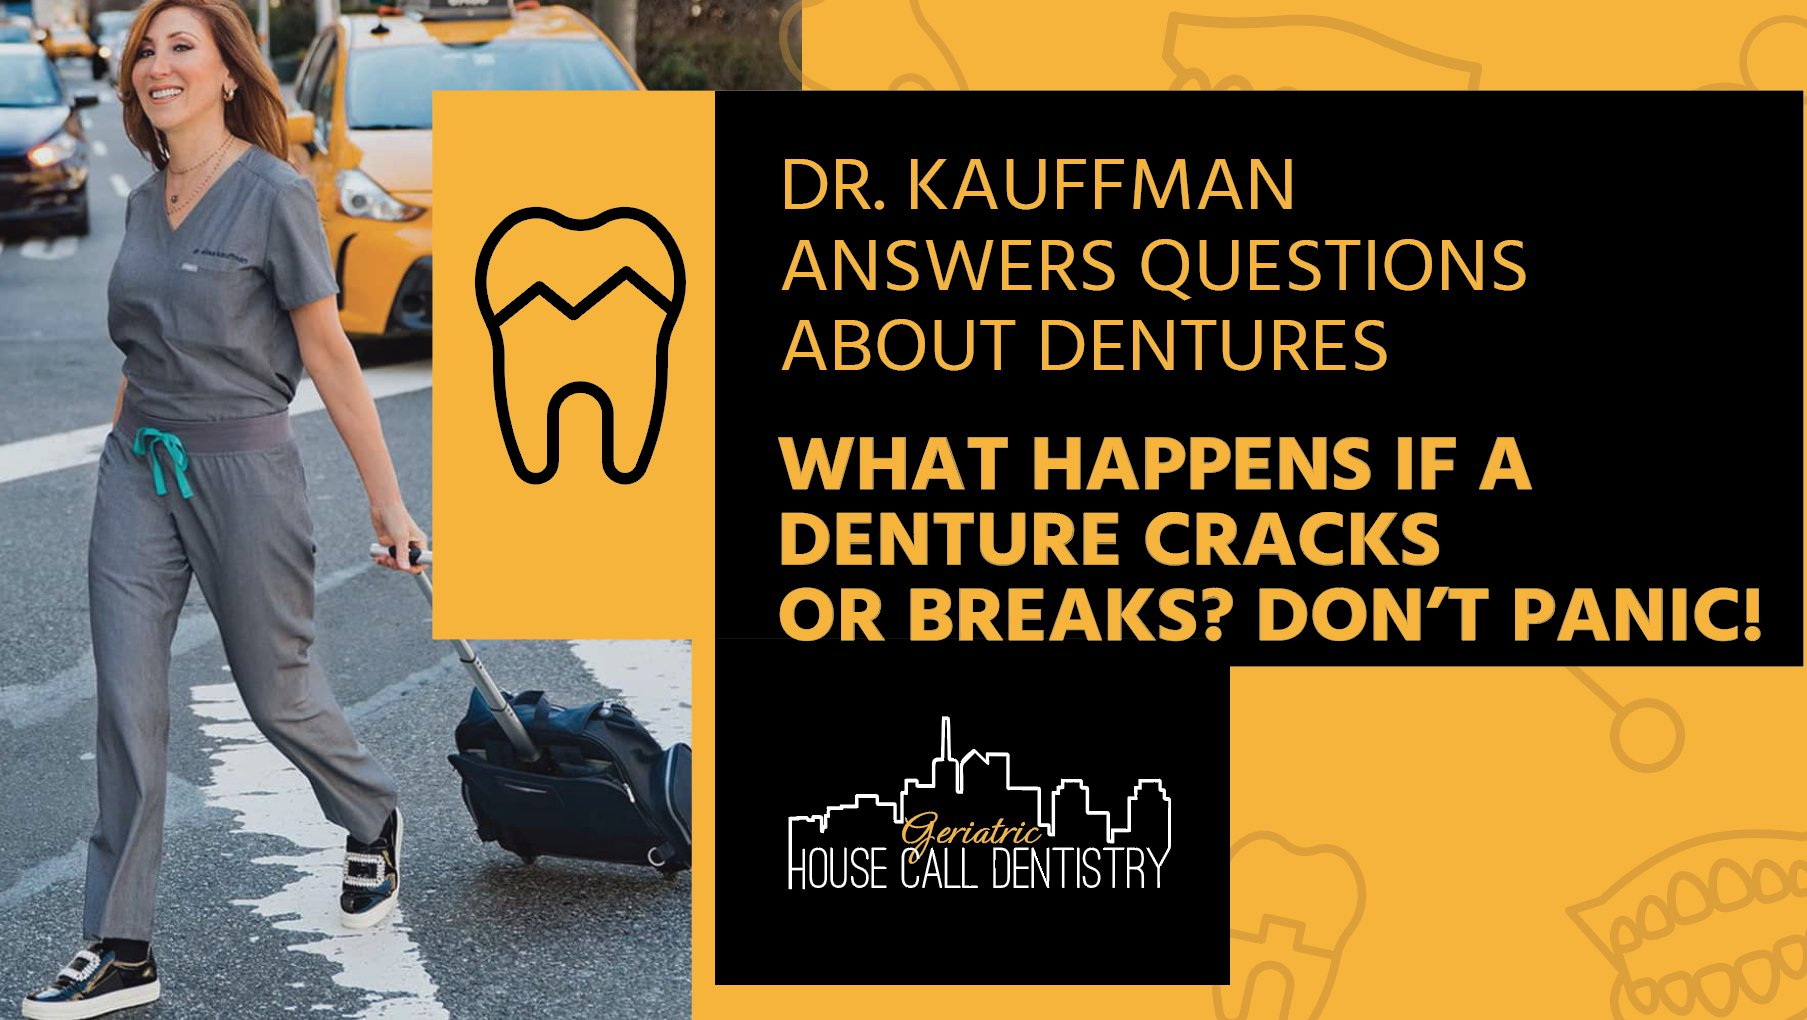 What happens if a denture cracks or breaks